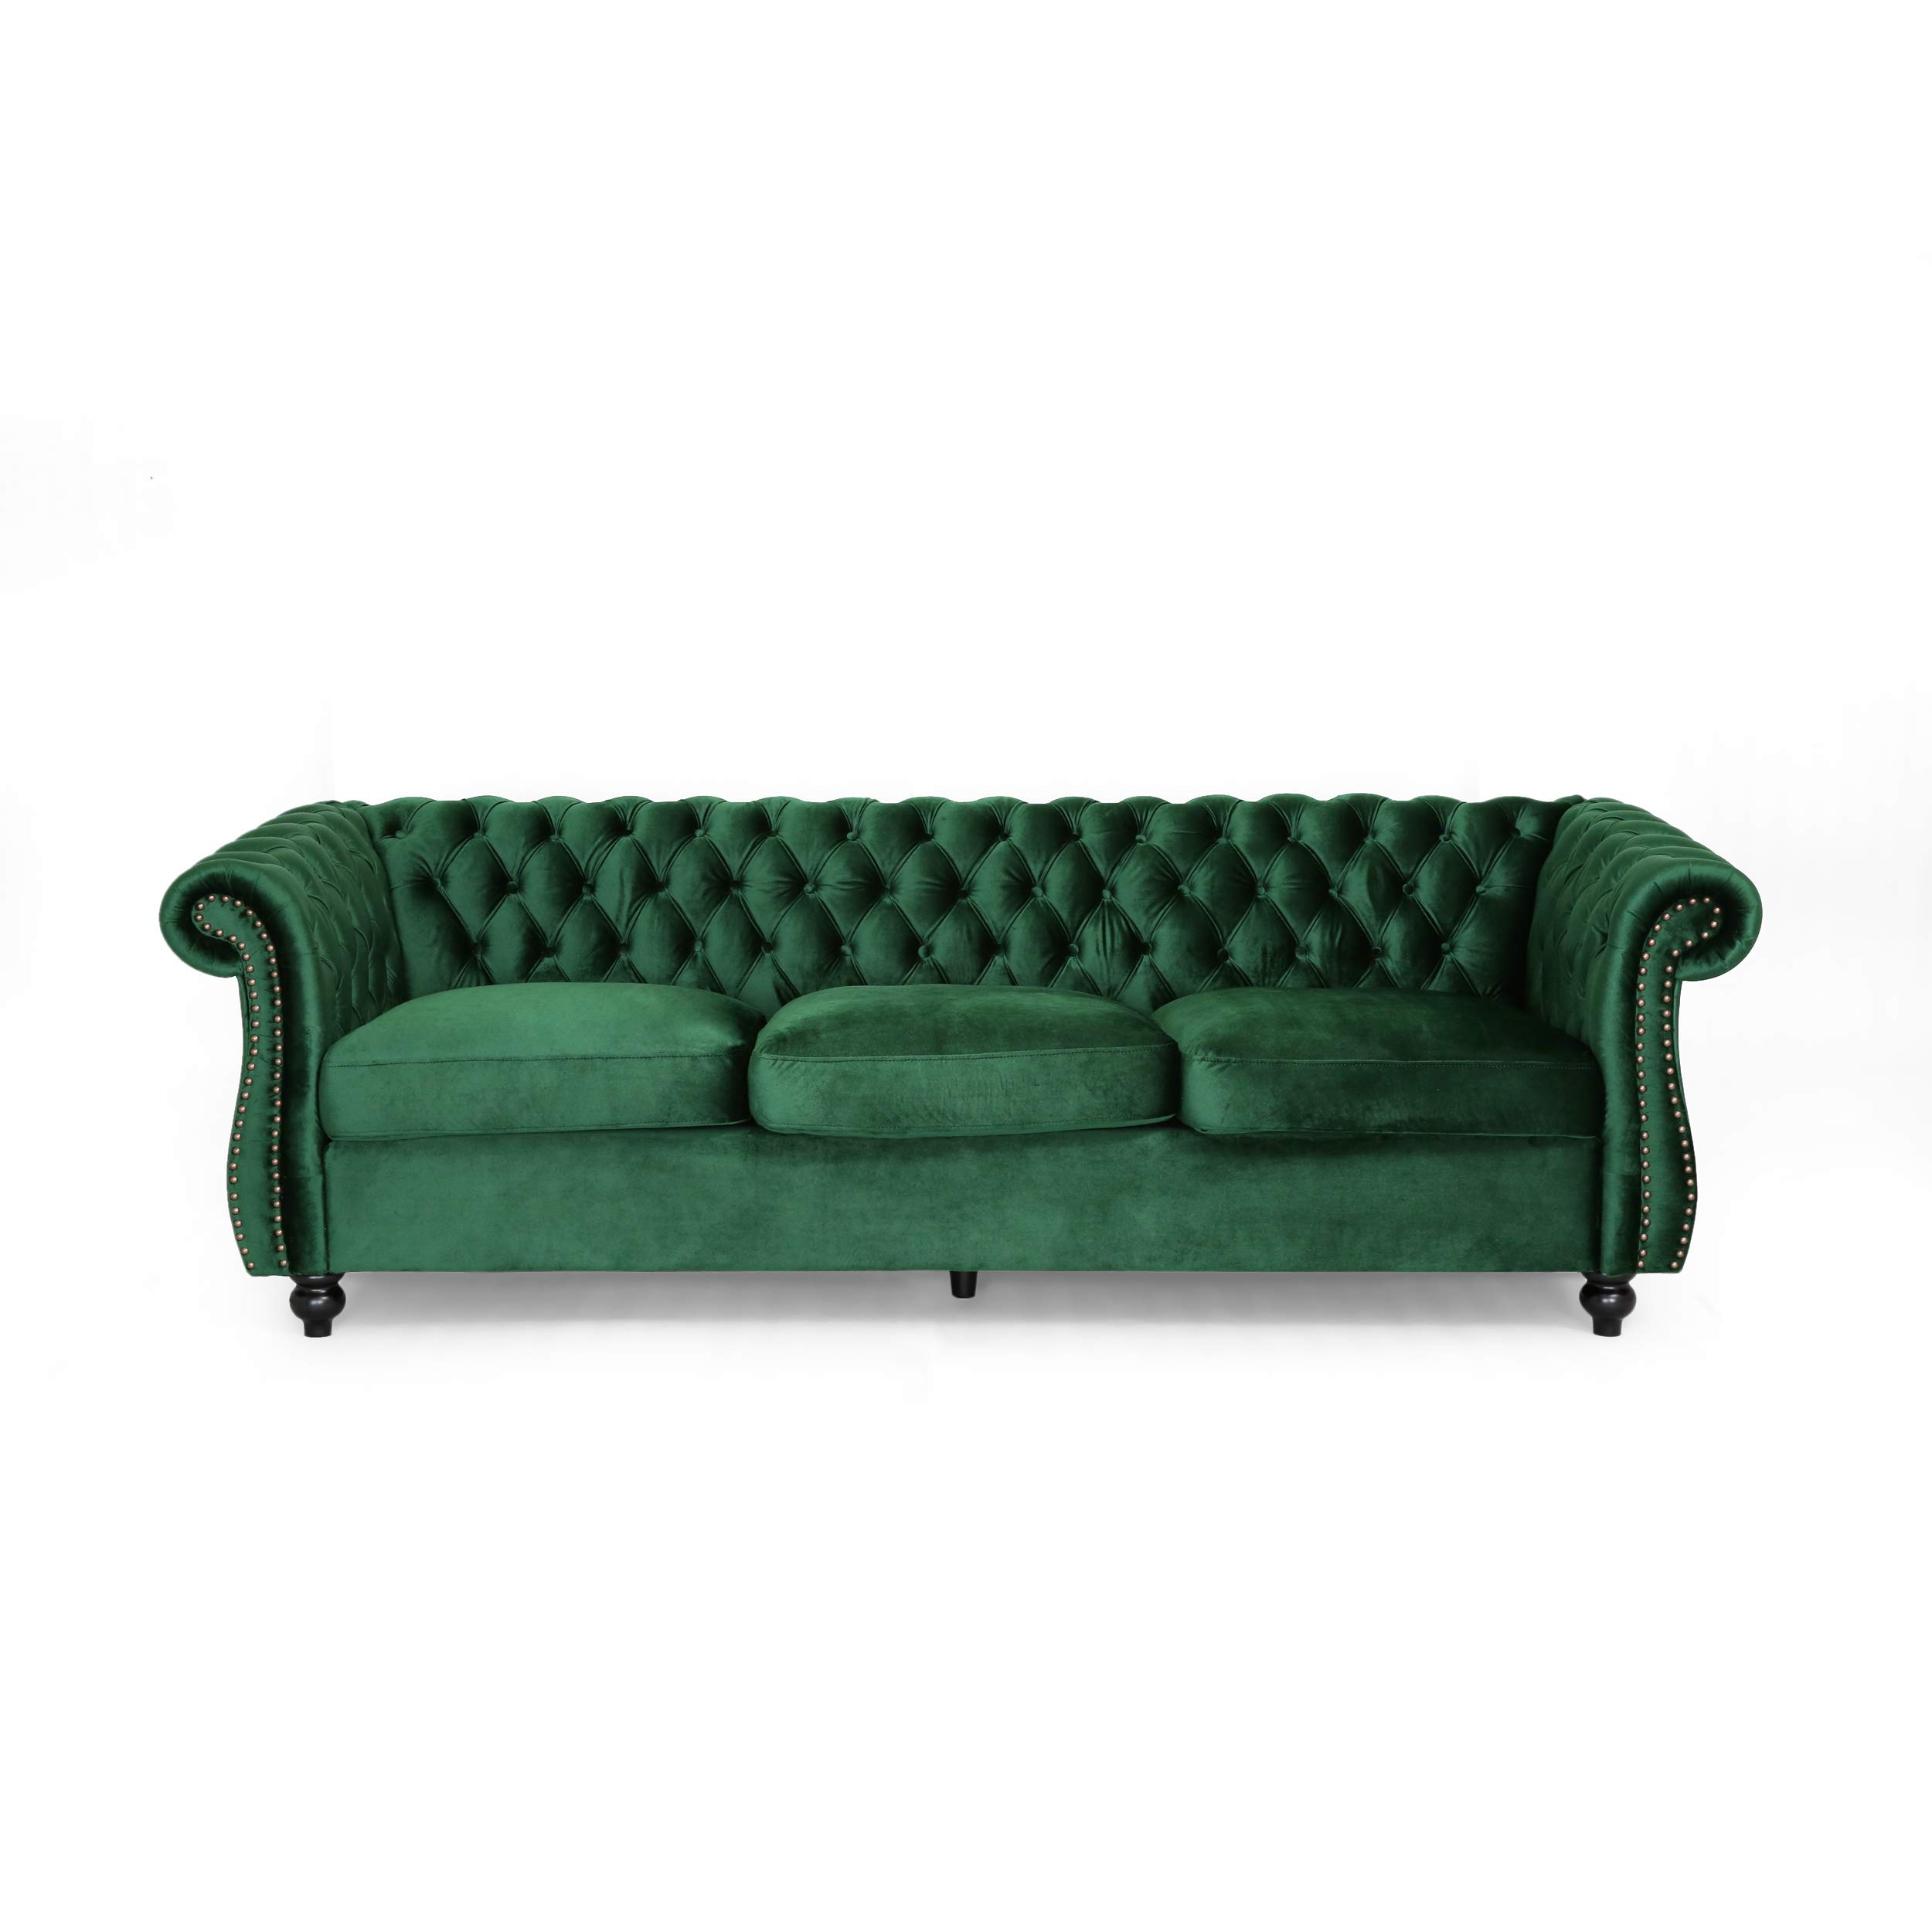 Vita Chesterfield Tufted Jewel Toned Velvet Sofa with Scroll Arms, Emerald by Great Deal Furniture